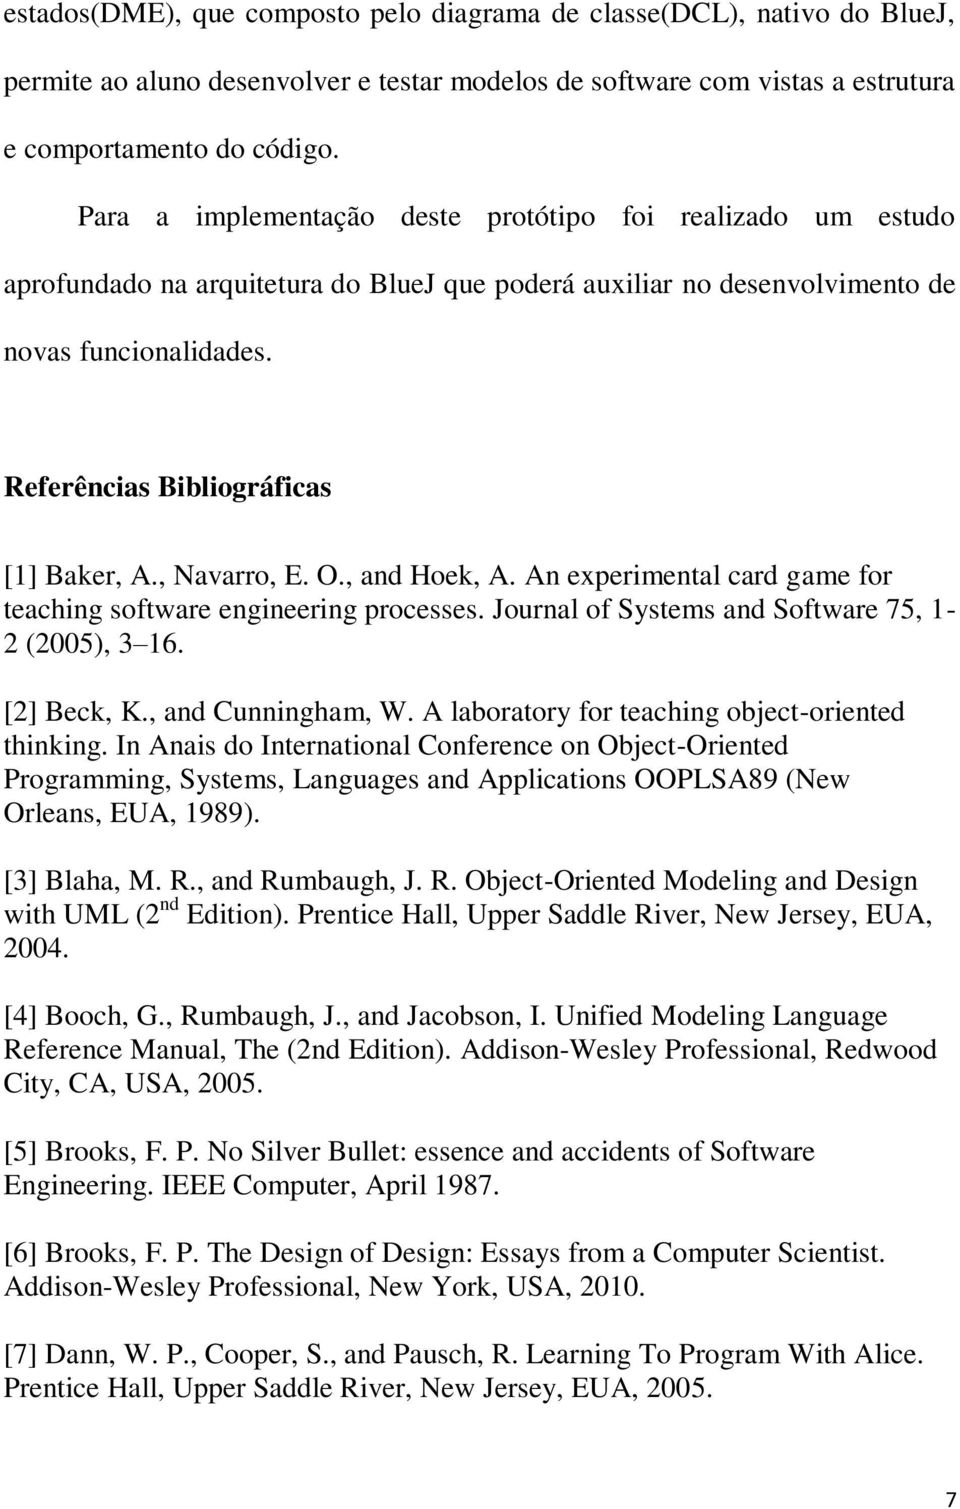 Referências Bibliográficas [1] Baker, A., Navarro, E. O., and Hoek, A. An experimental card game for teaching software engineering processes. Journal of Systems and Software 75, 1-2 (2005), 3 16.